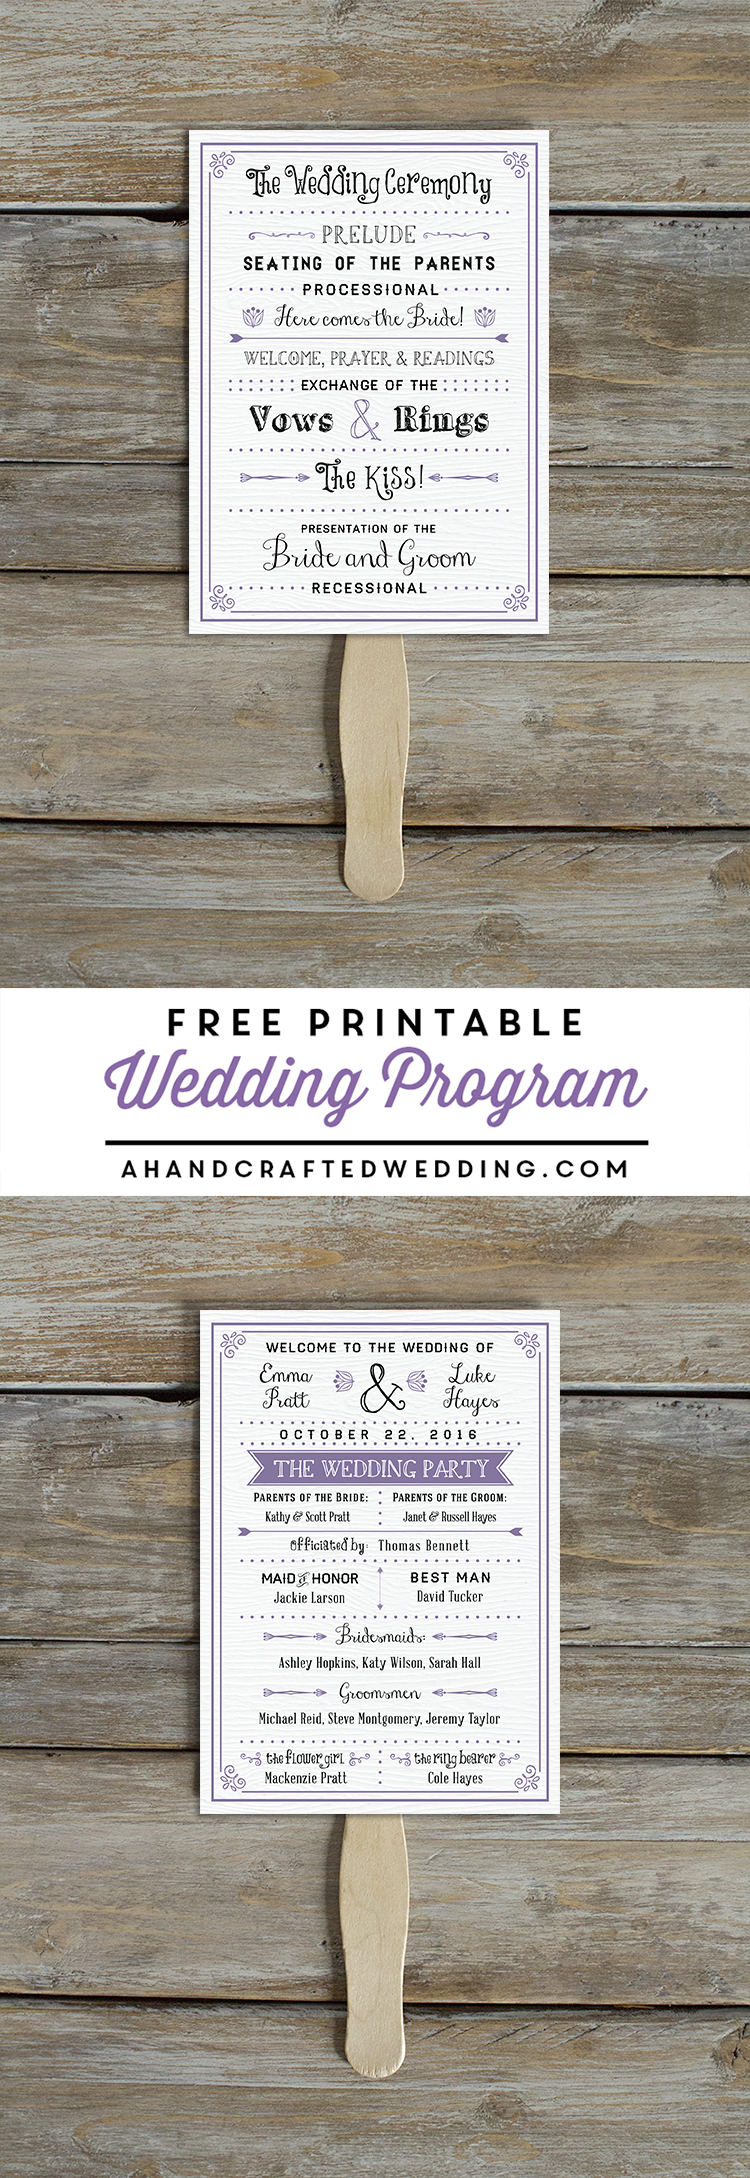 FREE Printable Wedding Program ahandcraftedweddingcom DIY